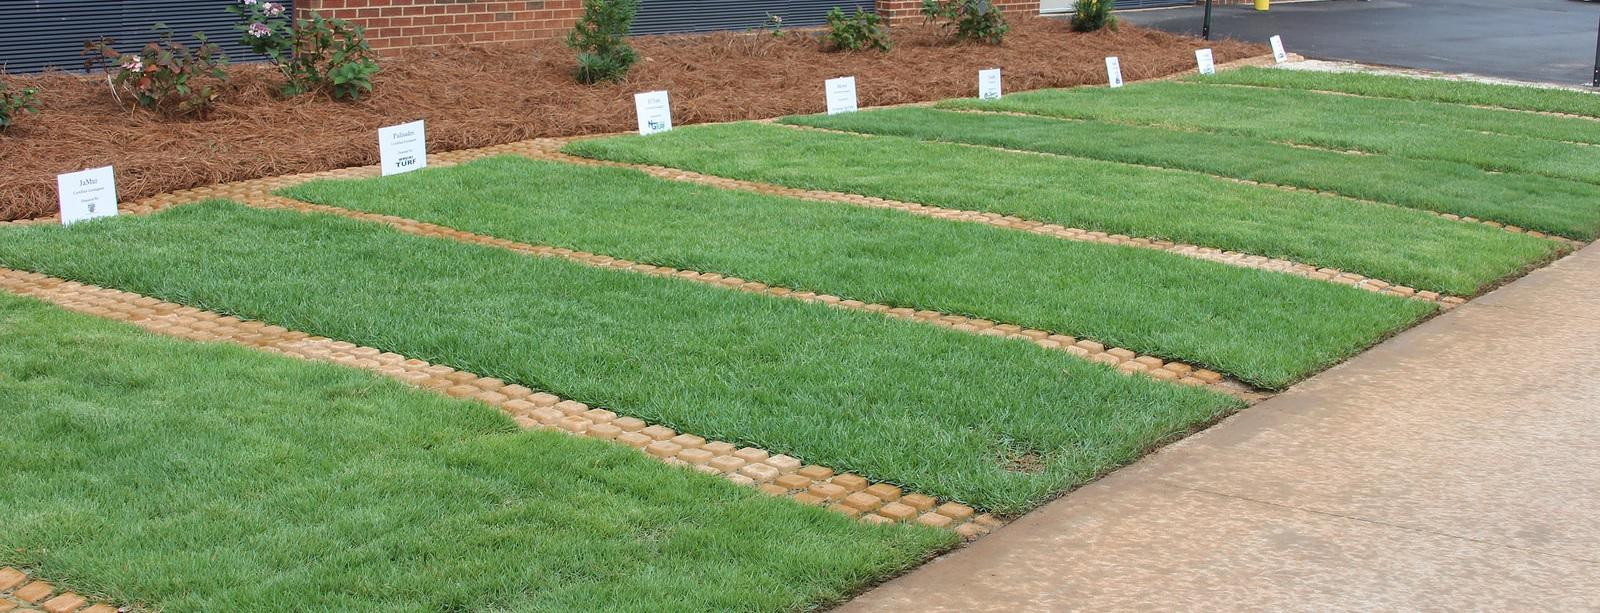 Turfgrass Plots